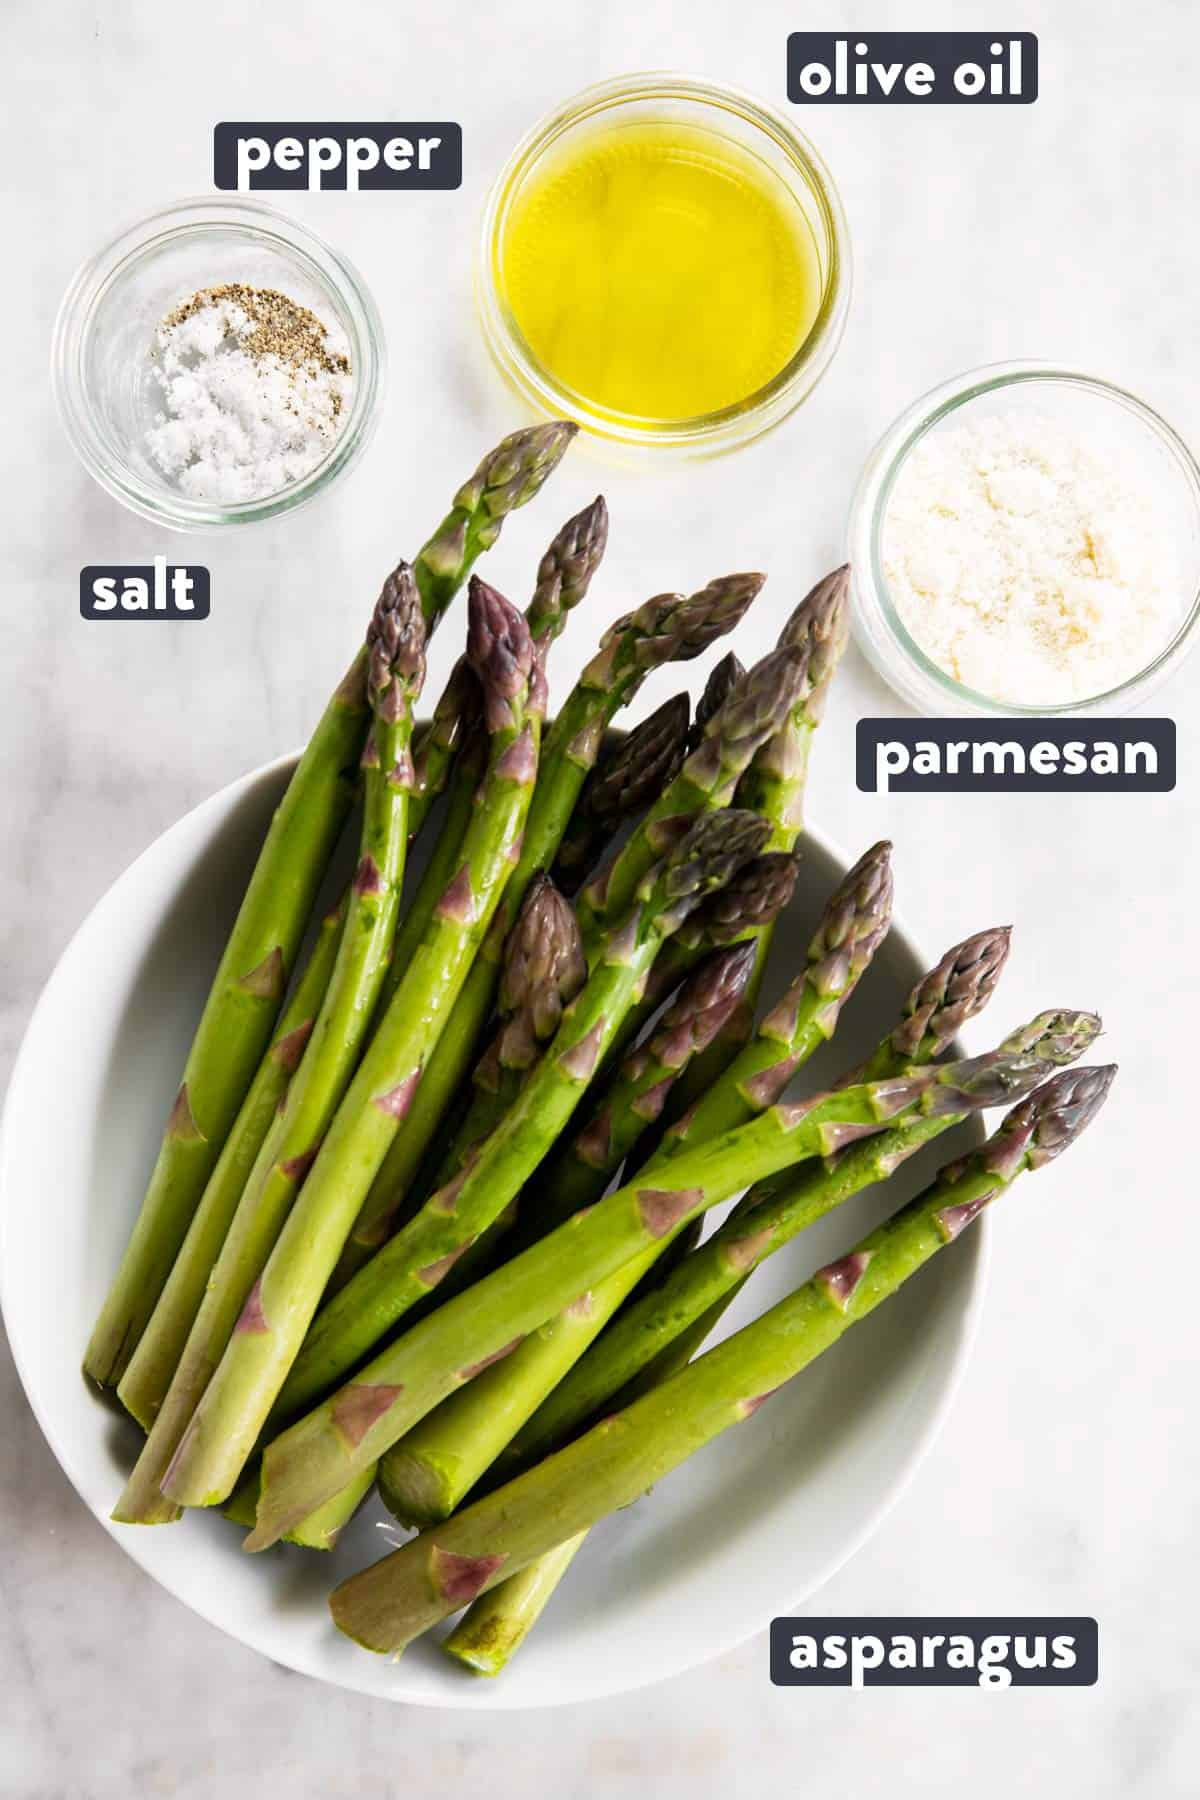 ingredients for air fryer asparagus with text labels